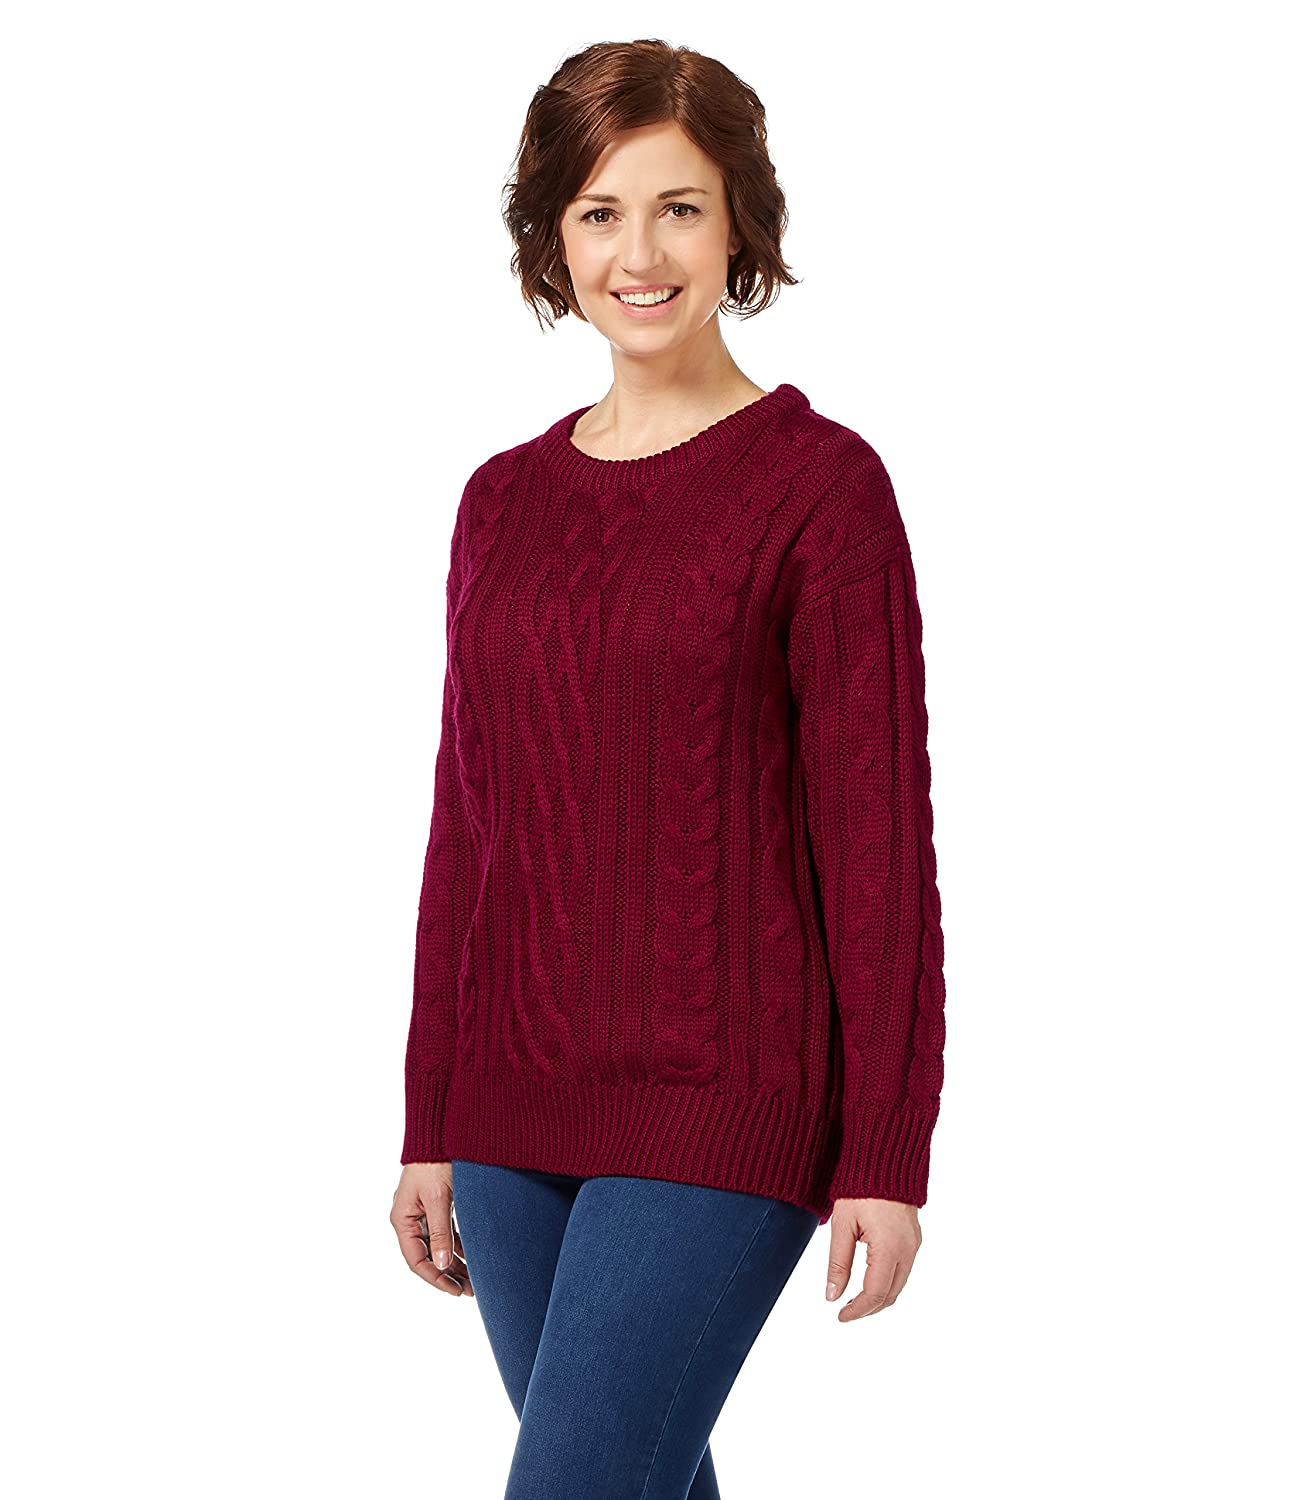 WoolOvers Aran Strick Pullover – Damen (Schurwolle) F10 burgundy Medium